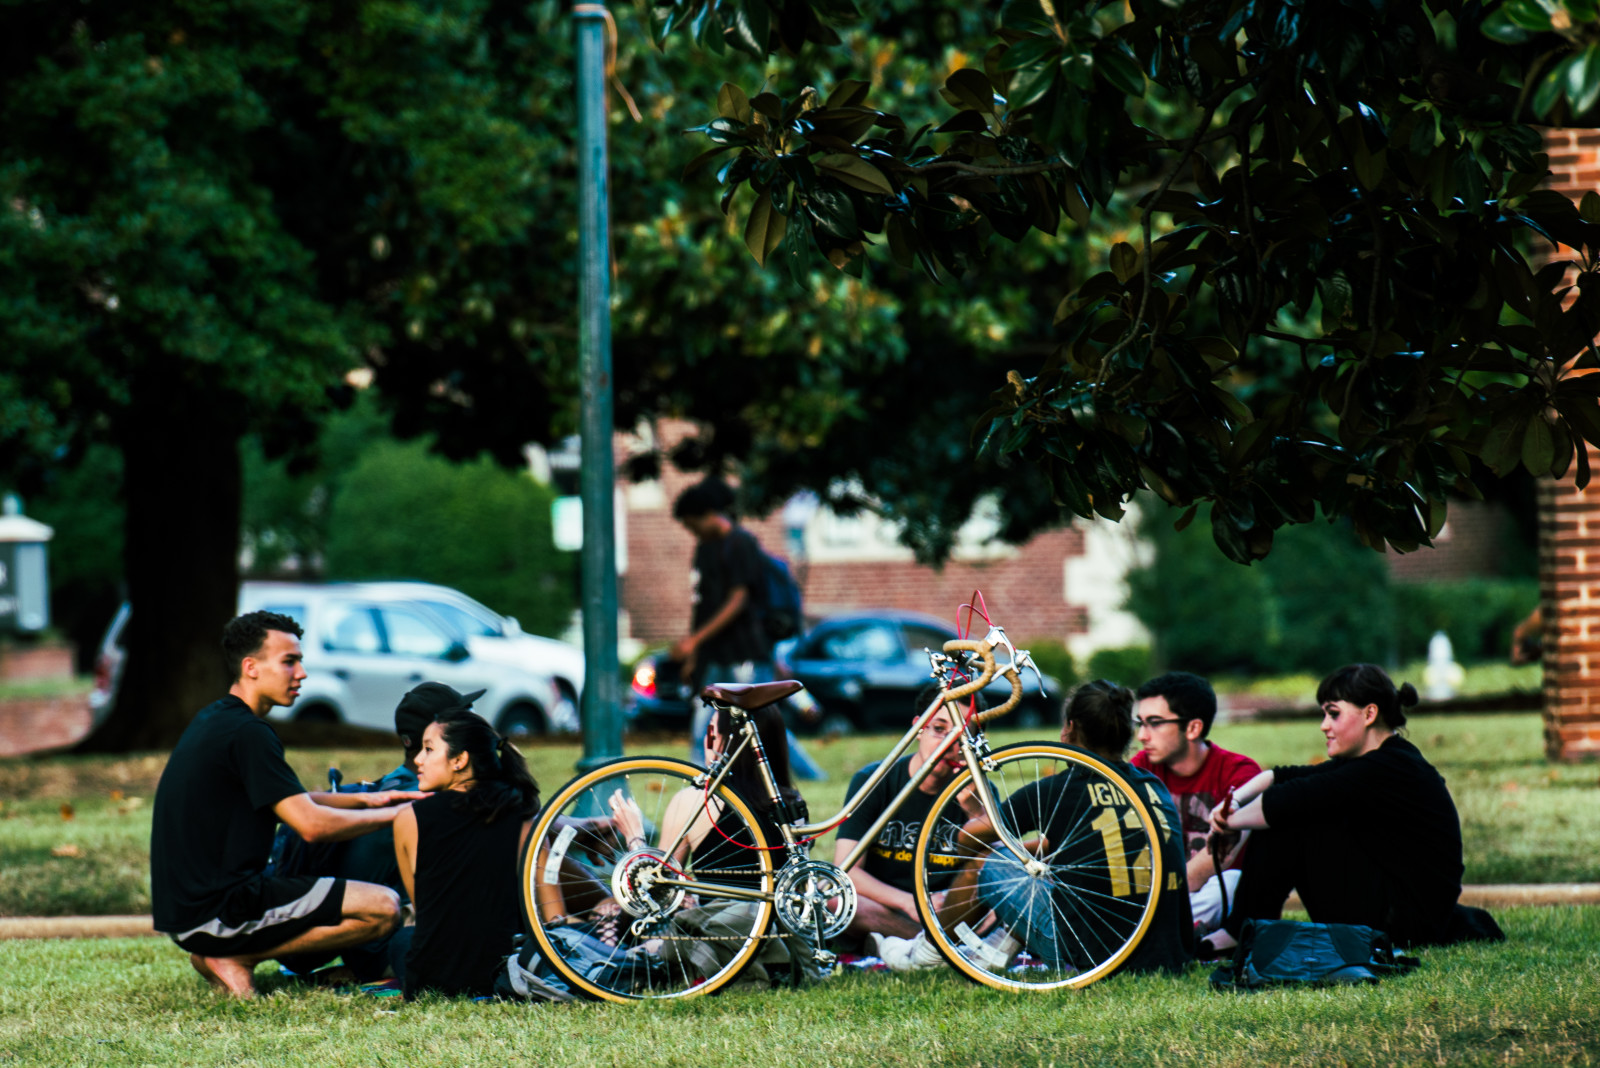 vcu student group bike